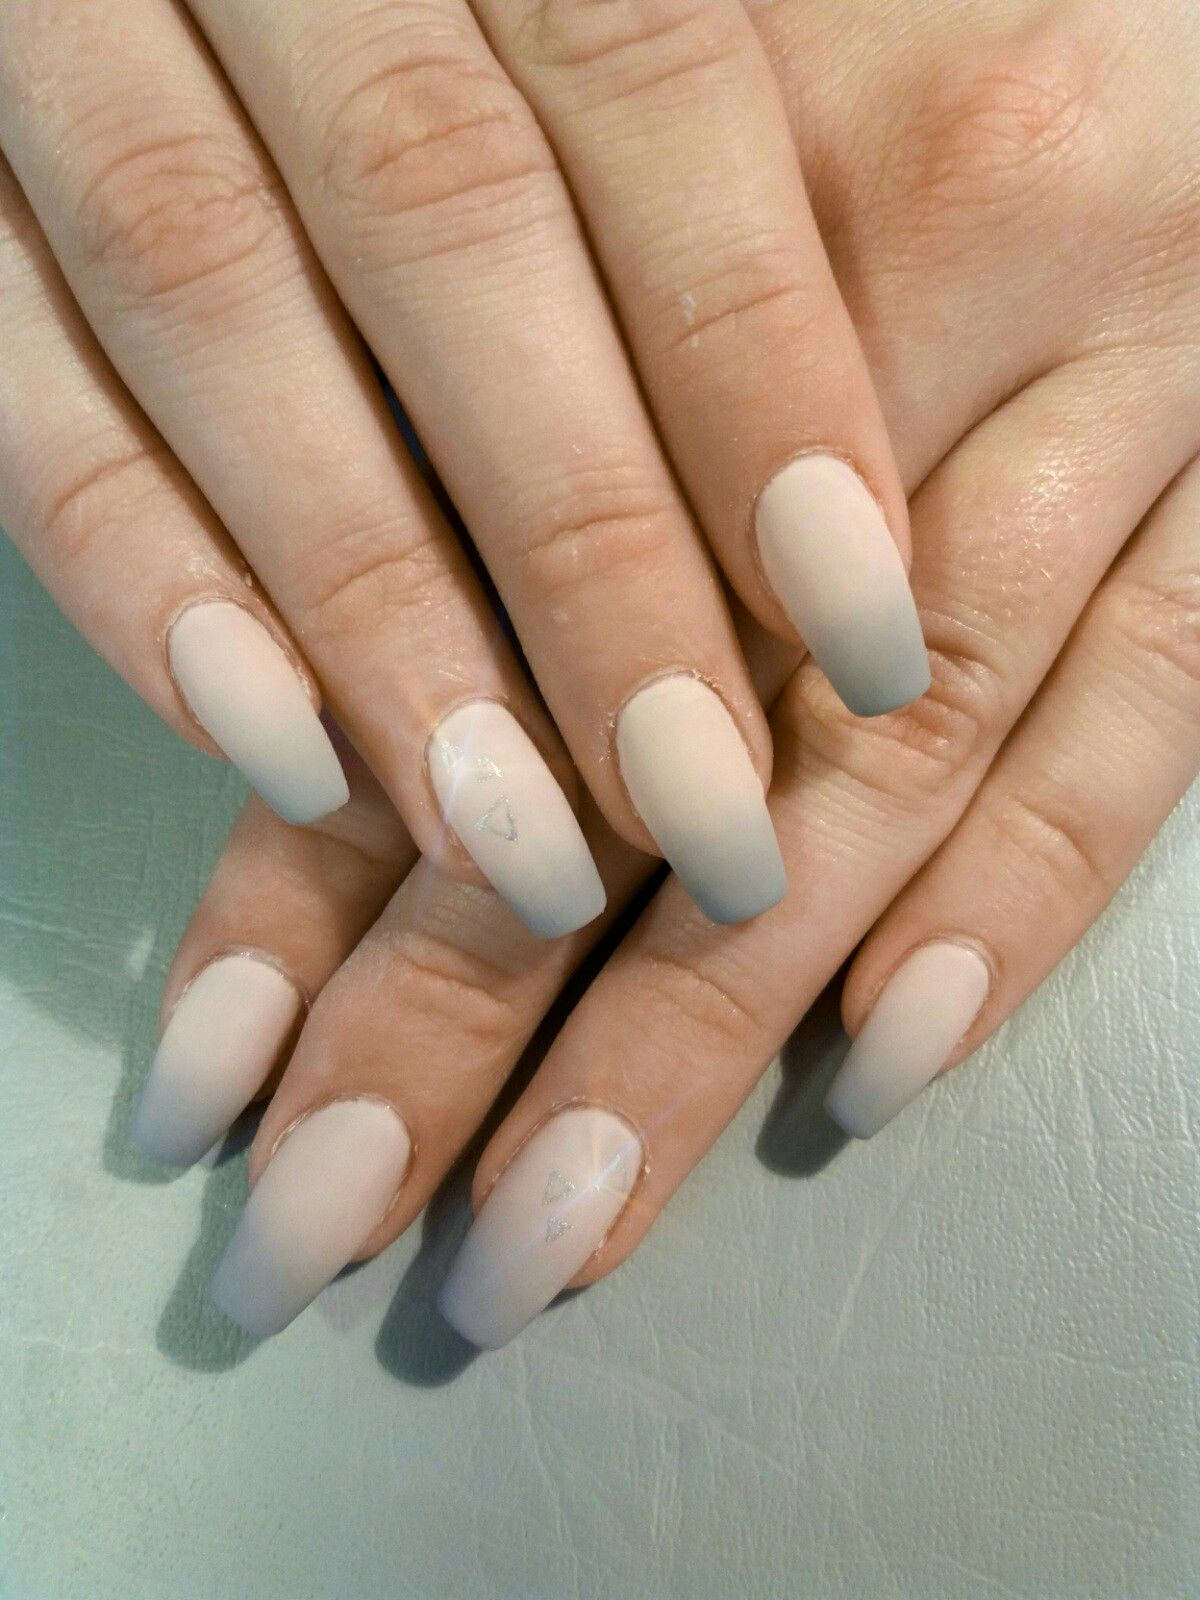 Pin On Nails Nail Design Gel Nails Nail Ideas